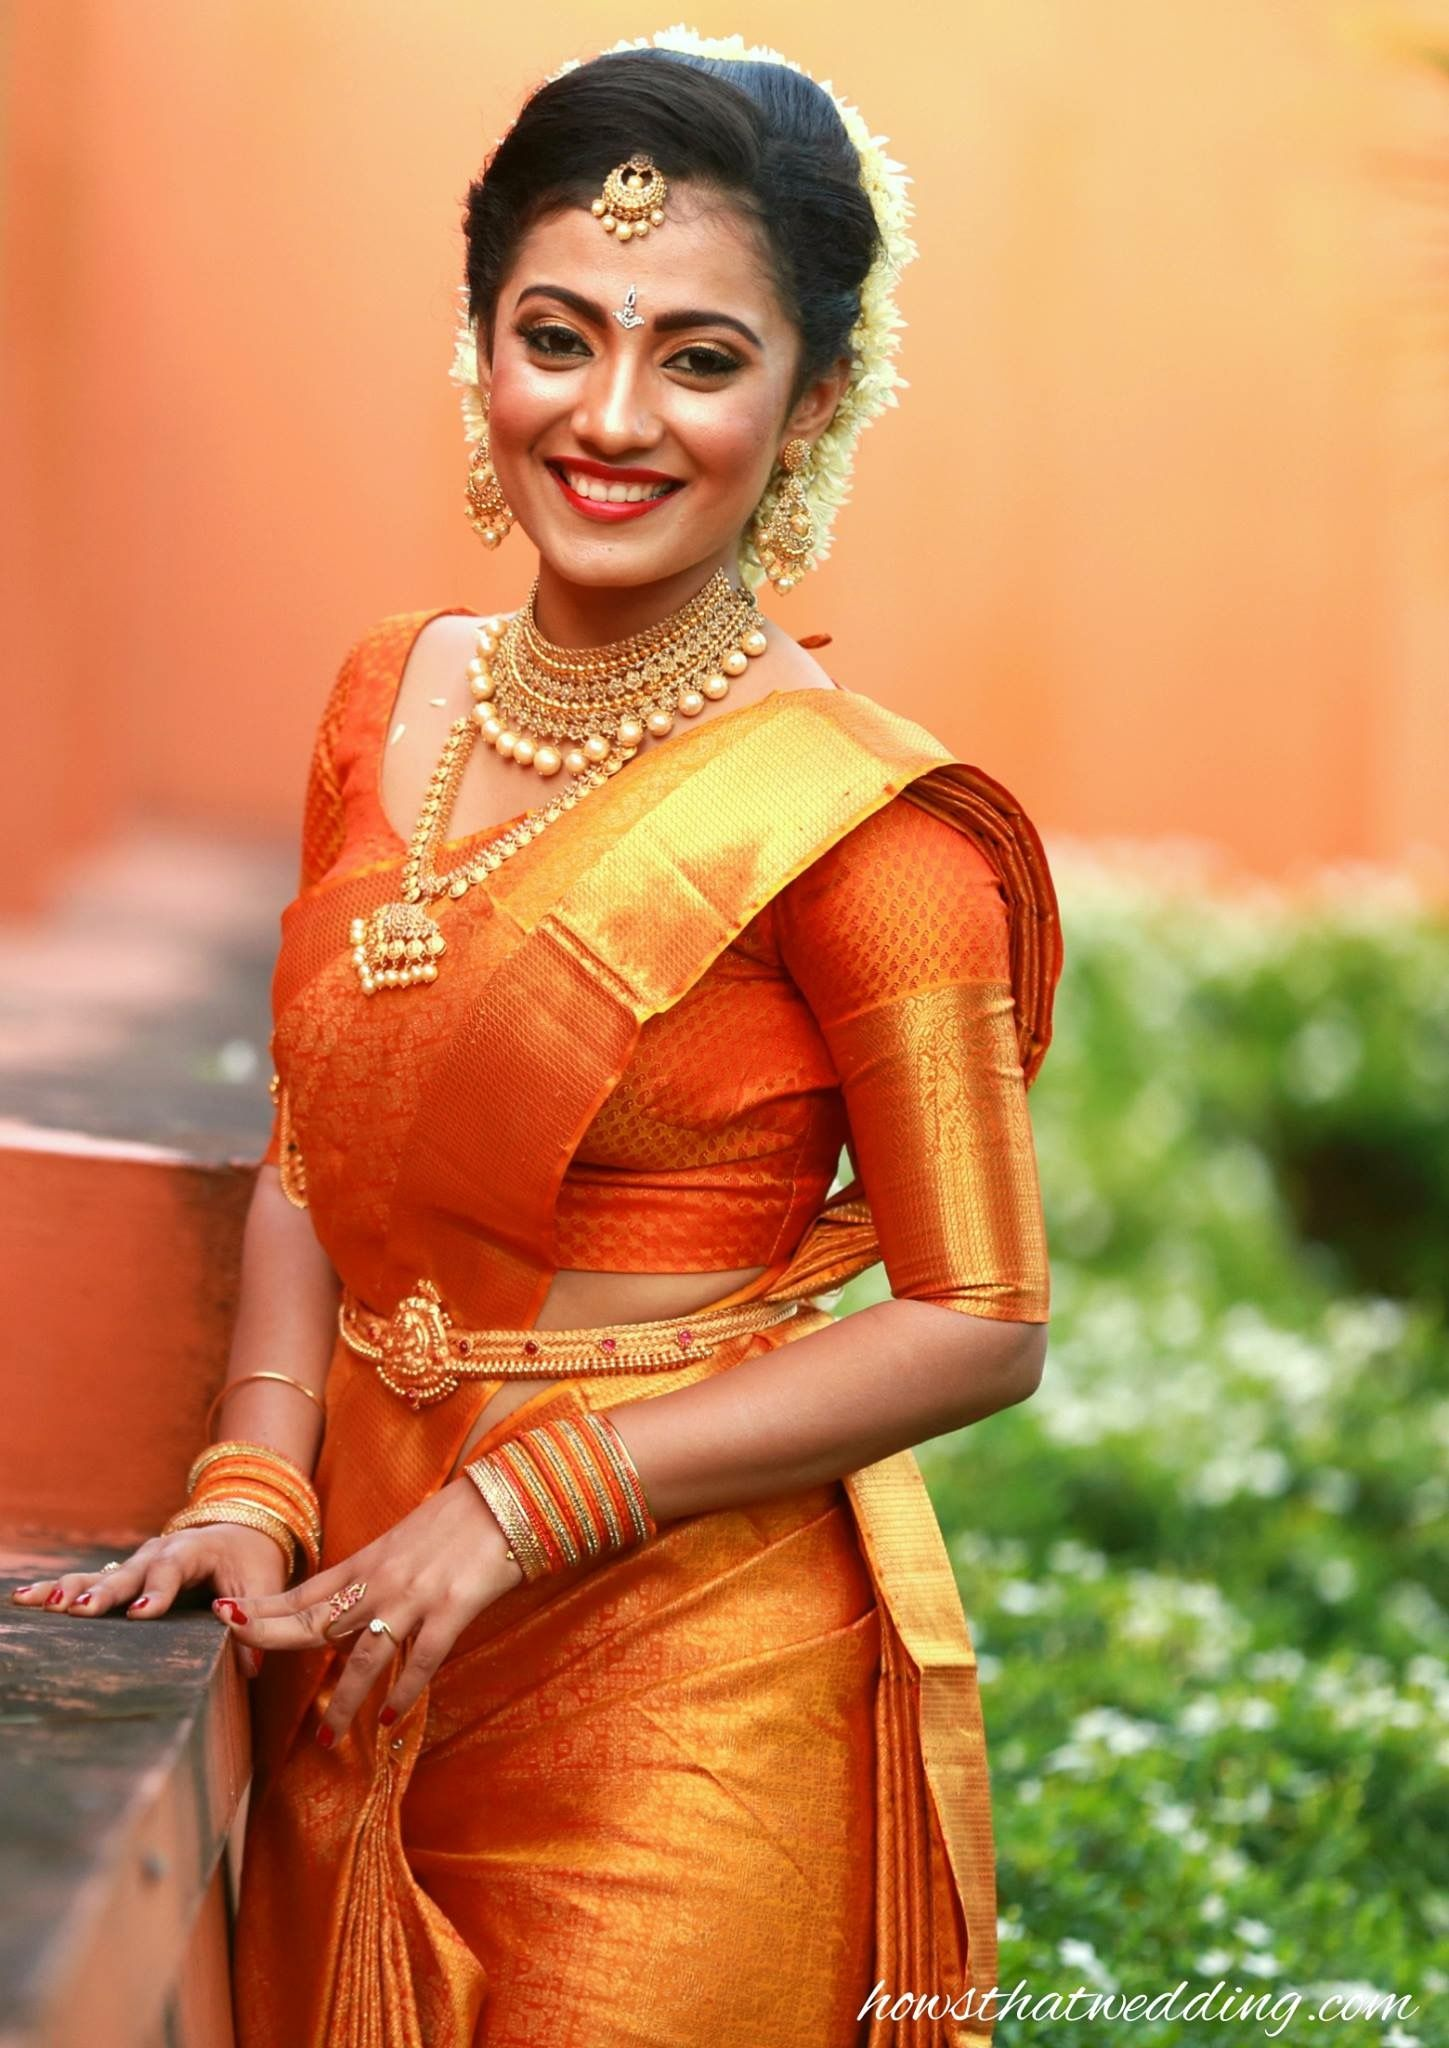 Pretty Bride With Elegant Yellow Musk Silk Saree Enhanced Beauty Of The Sandal Body Rich Contrast Tissue Border Merges Well And Brings